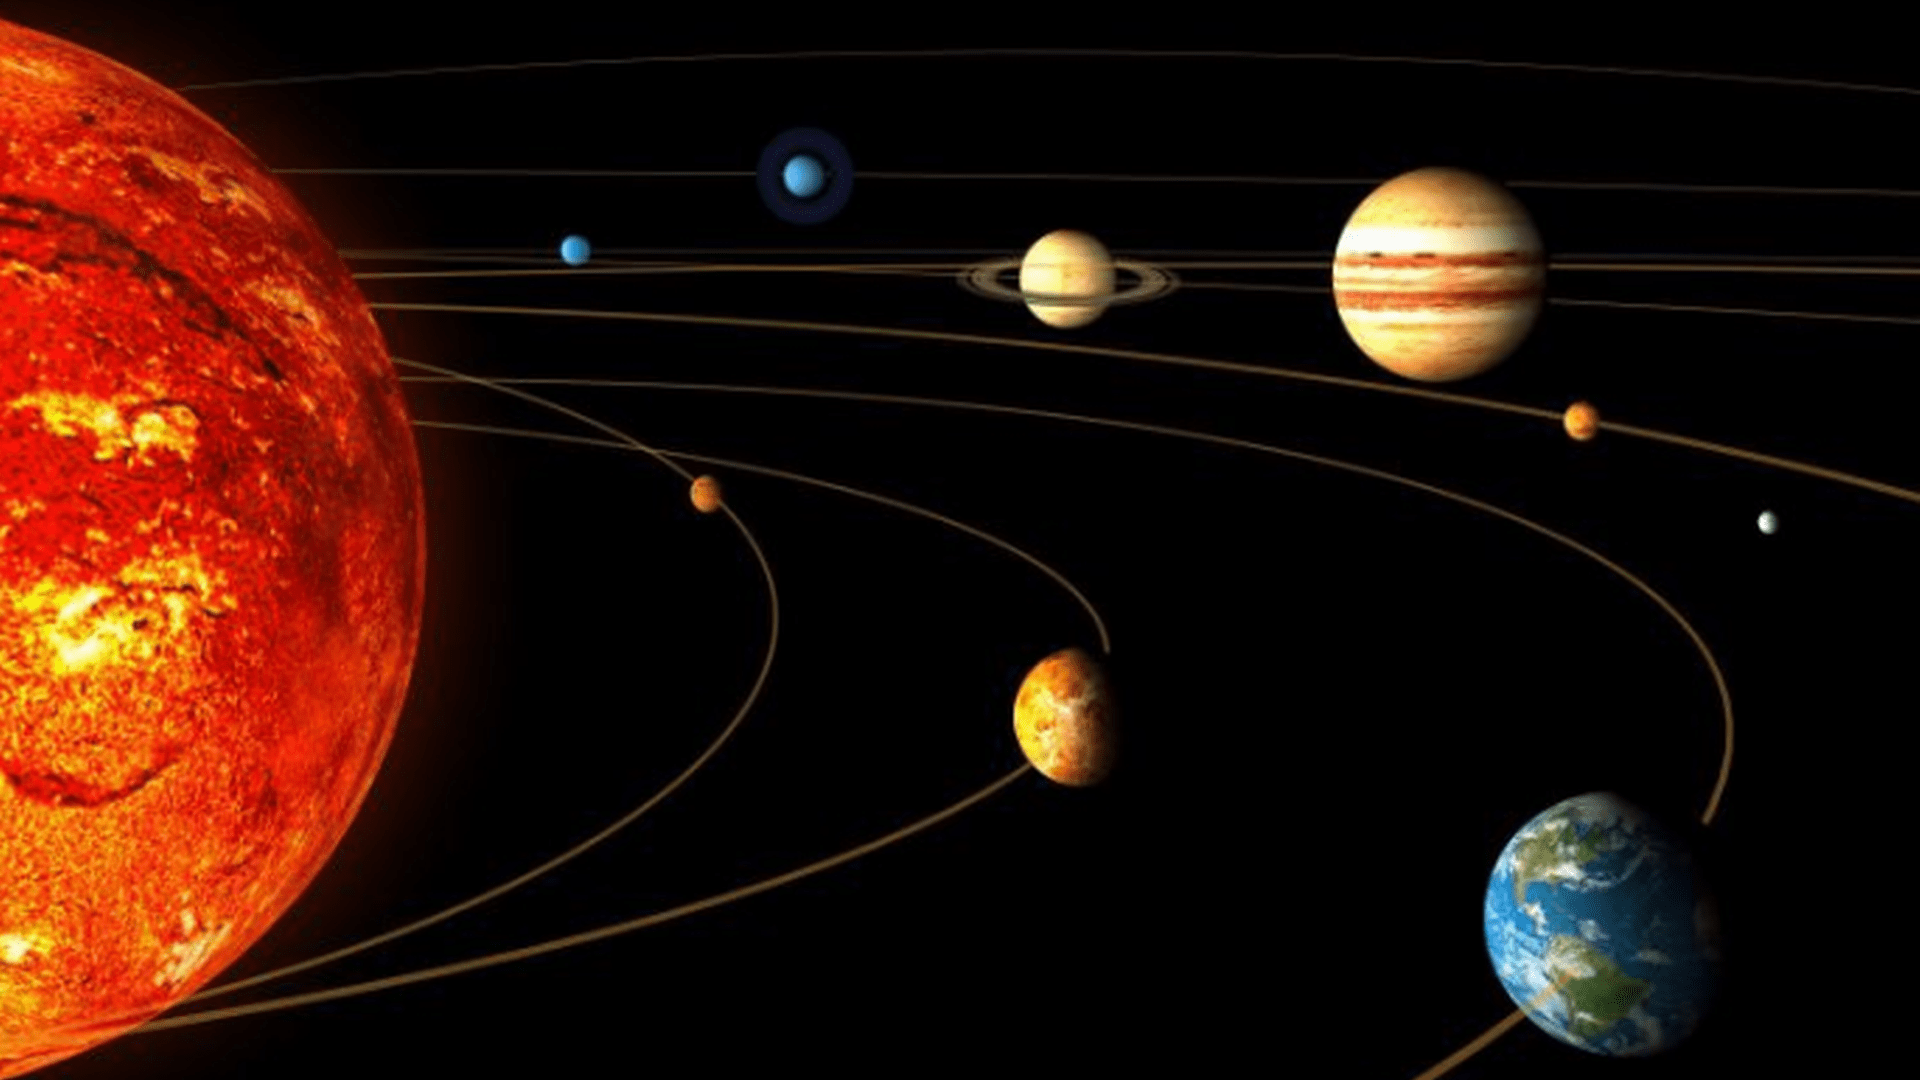 Iphone X Awesome Wallpaper Solar System Wallpaper Hd Wallpapers13 Com